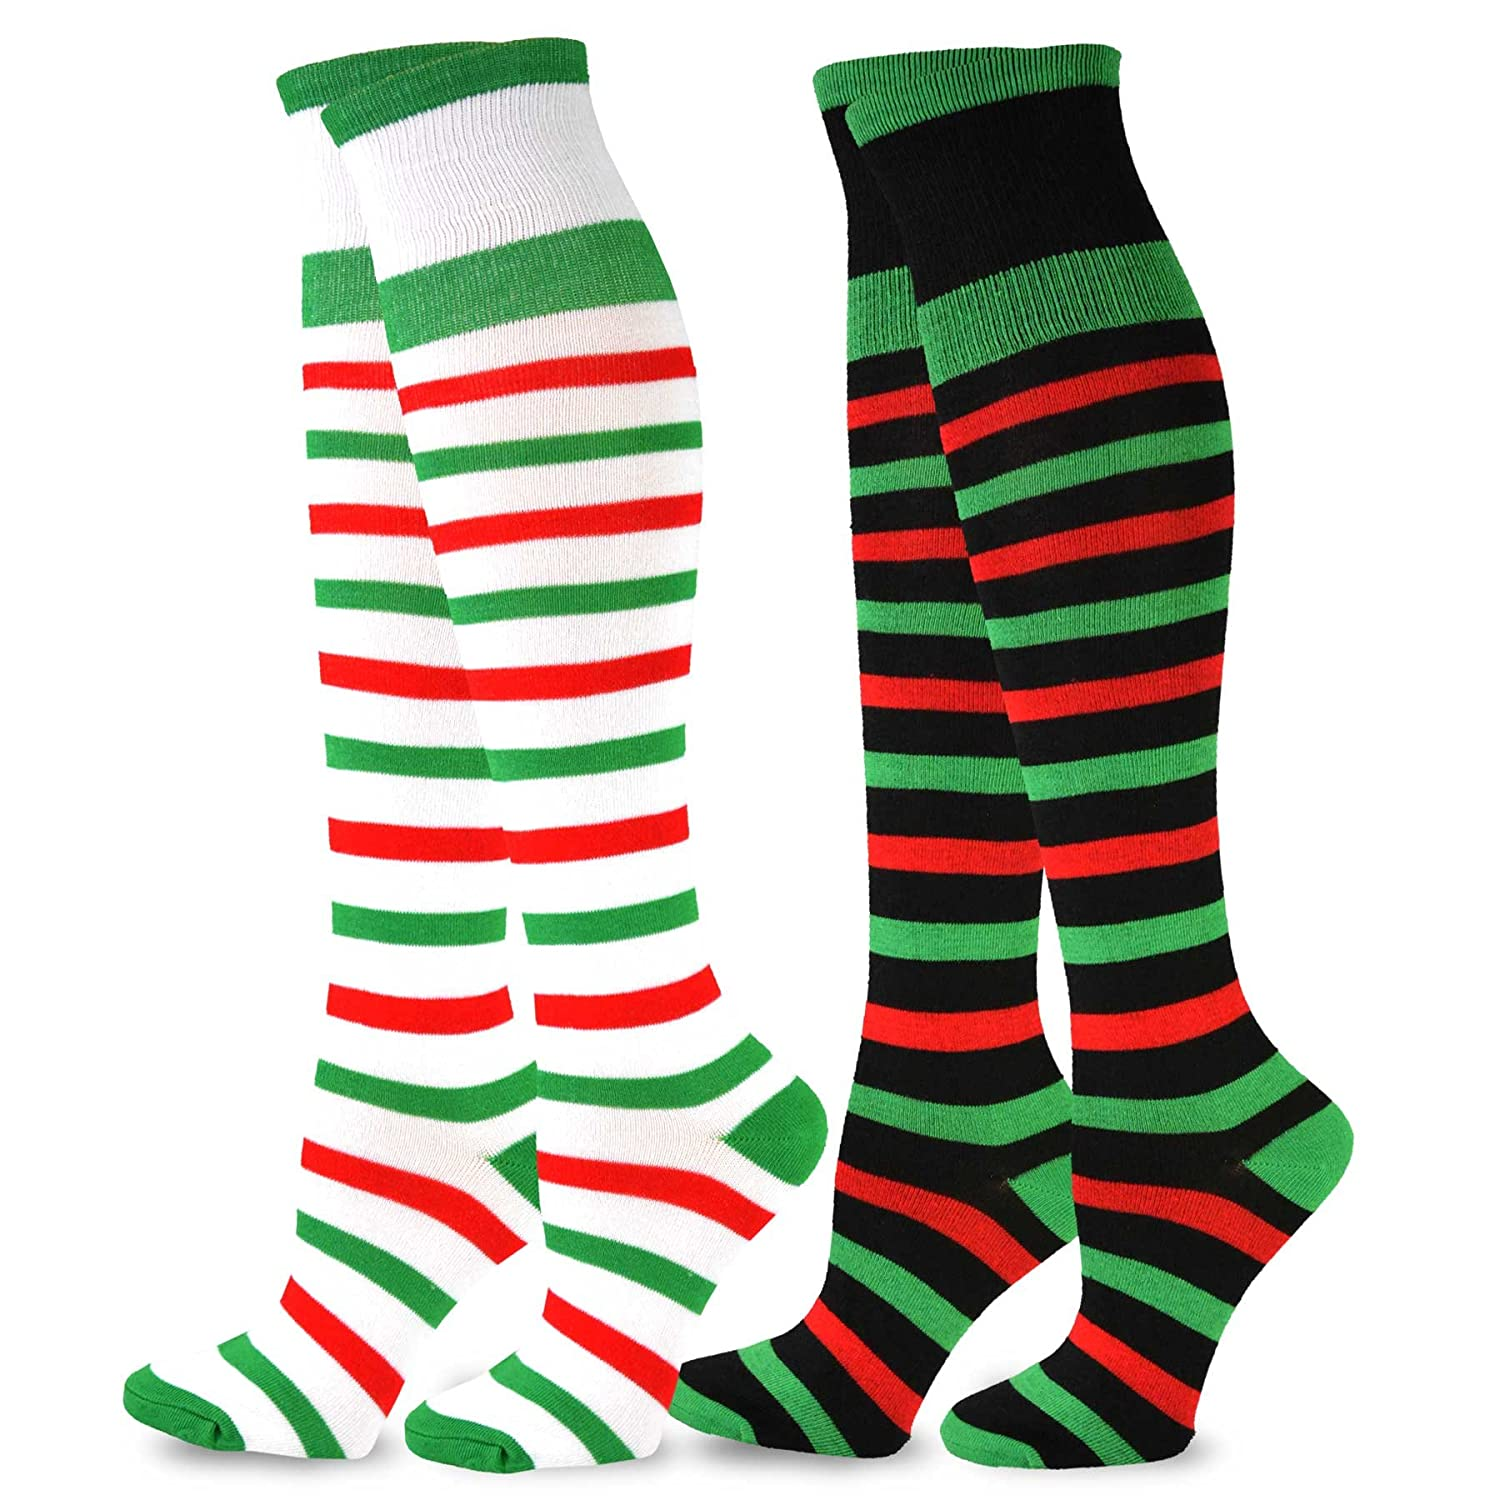 TeeHee Christmas and Holiday Fun Knee High Socks for Women 3-Pack Soxnet Inc S/11319-2P09